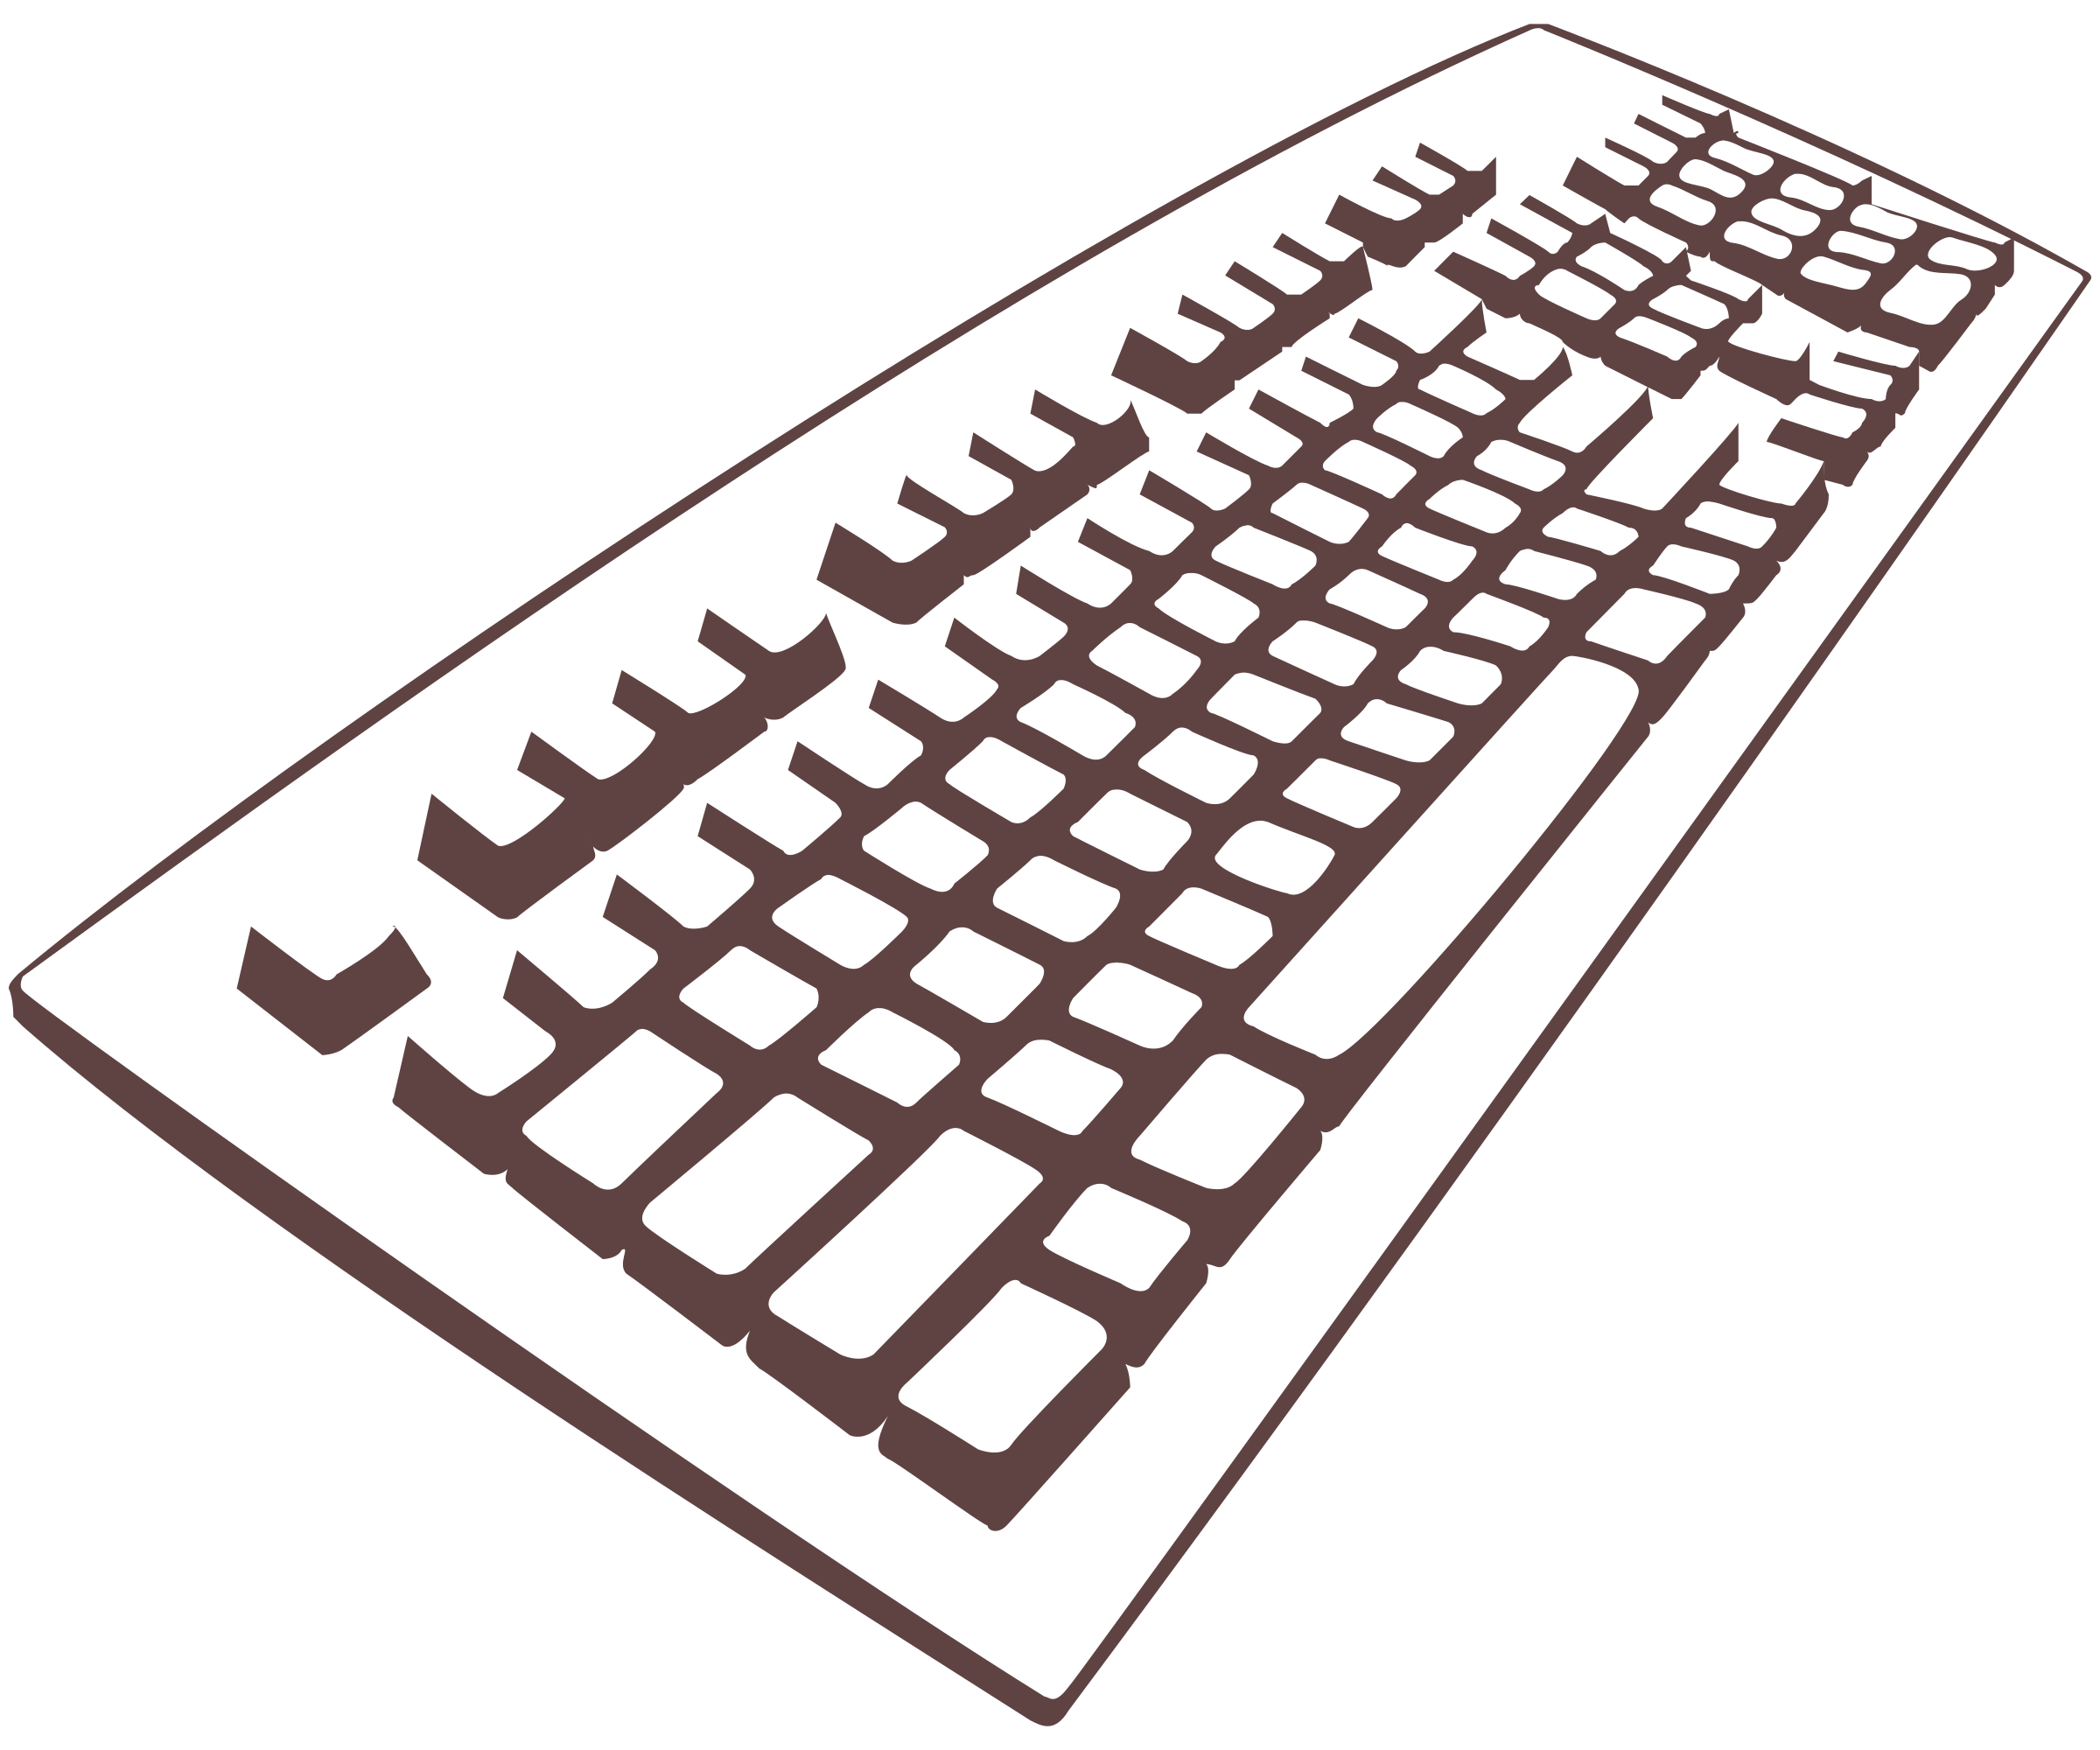 Keyboard by DooFi